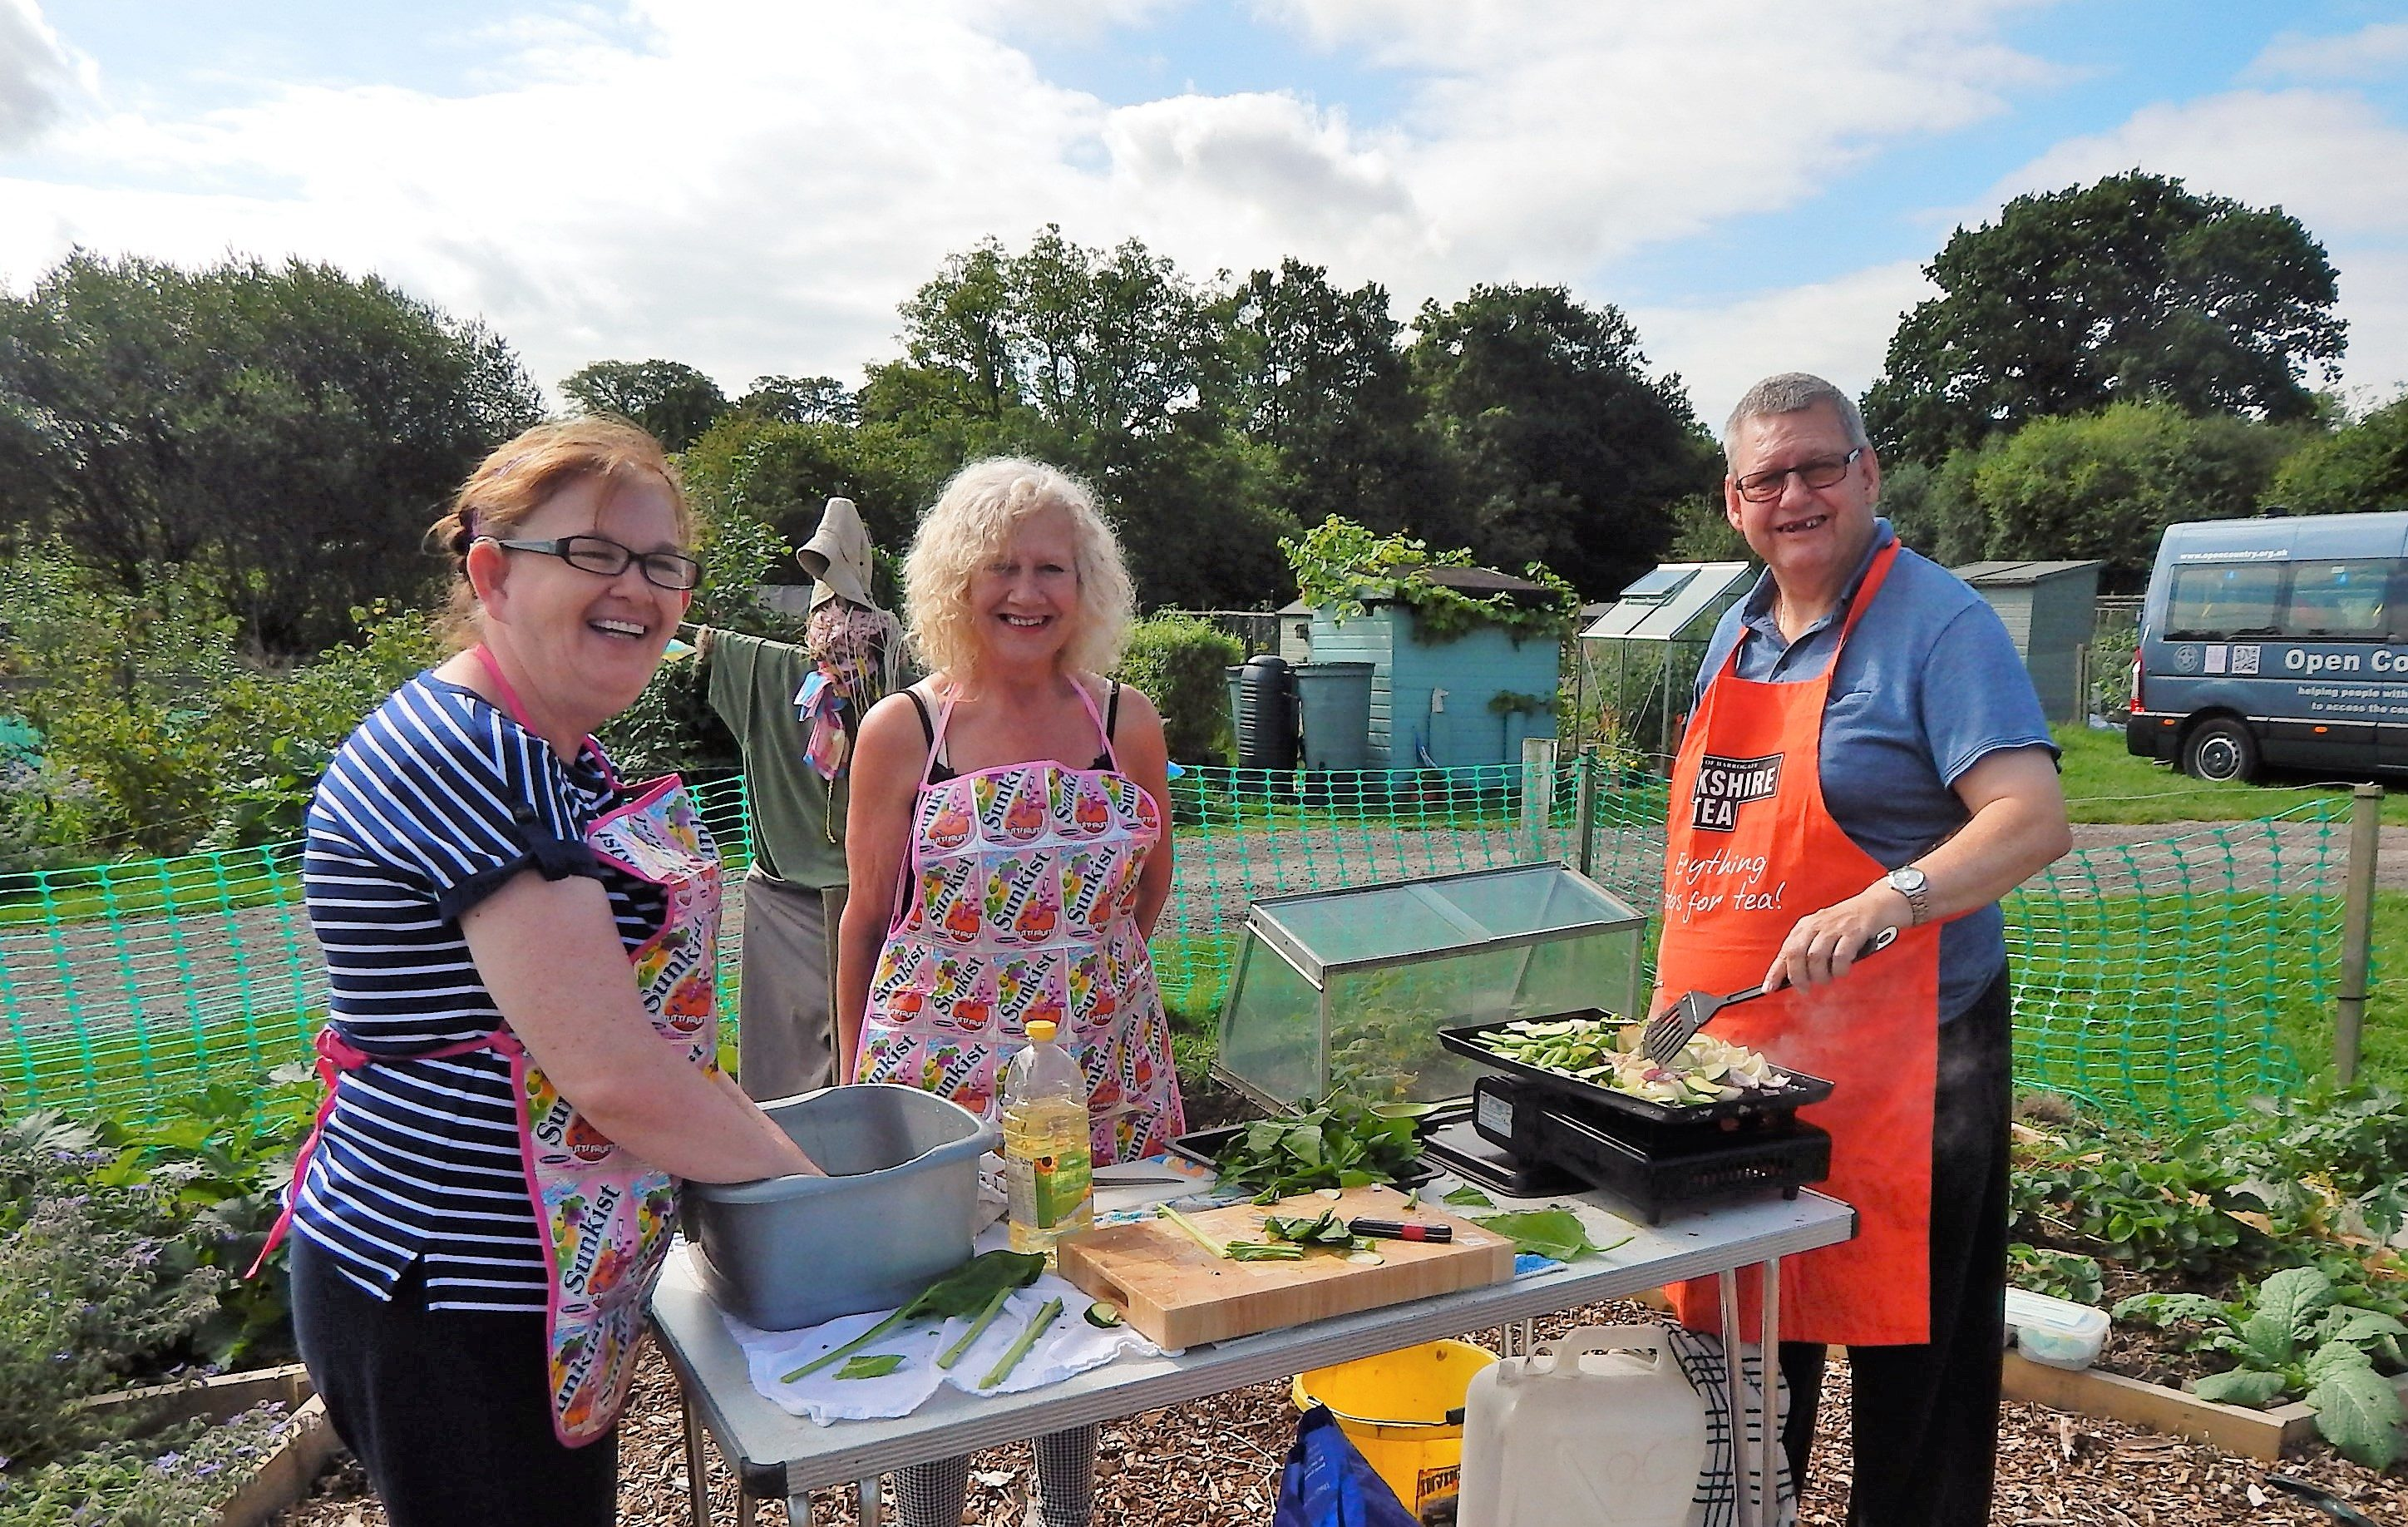 Two women and a man cooking on a table down an allotment.